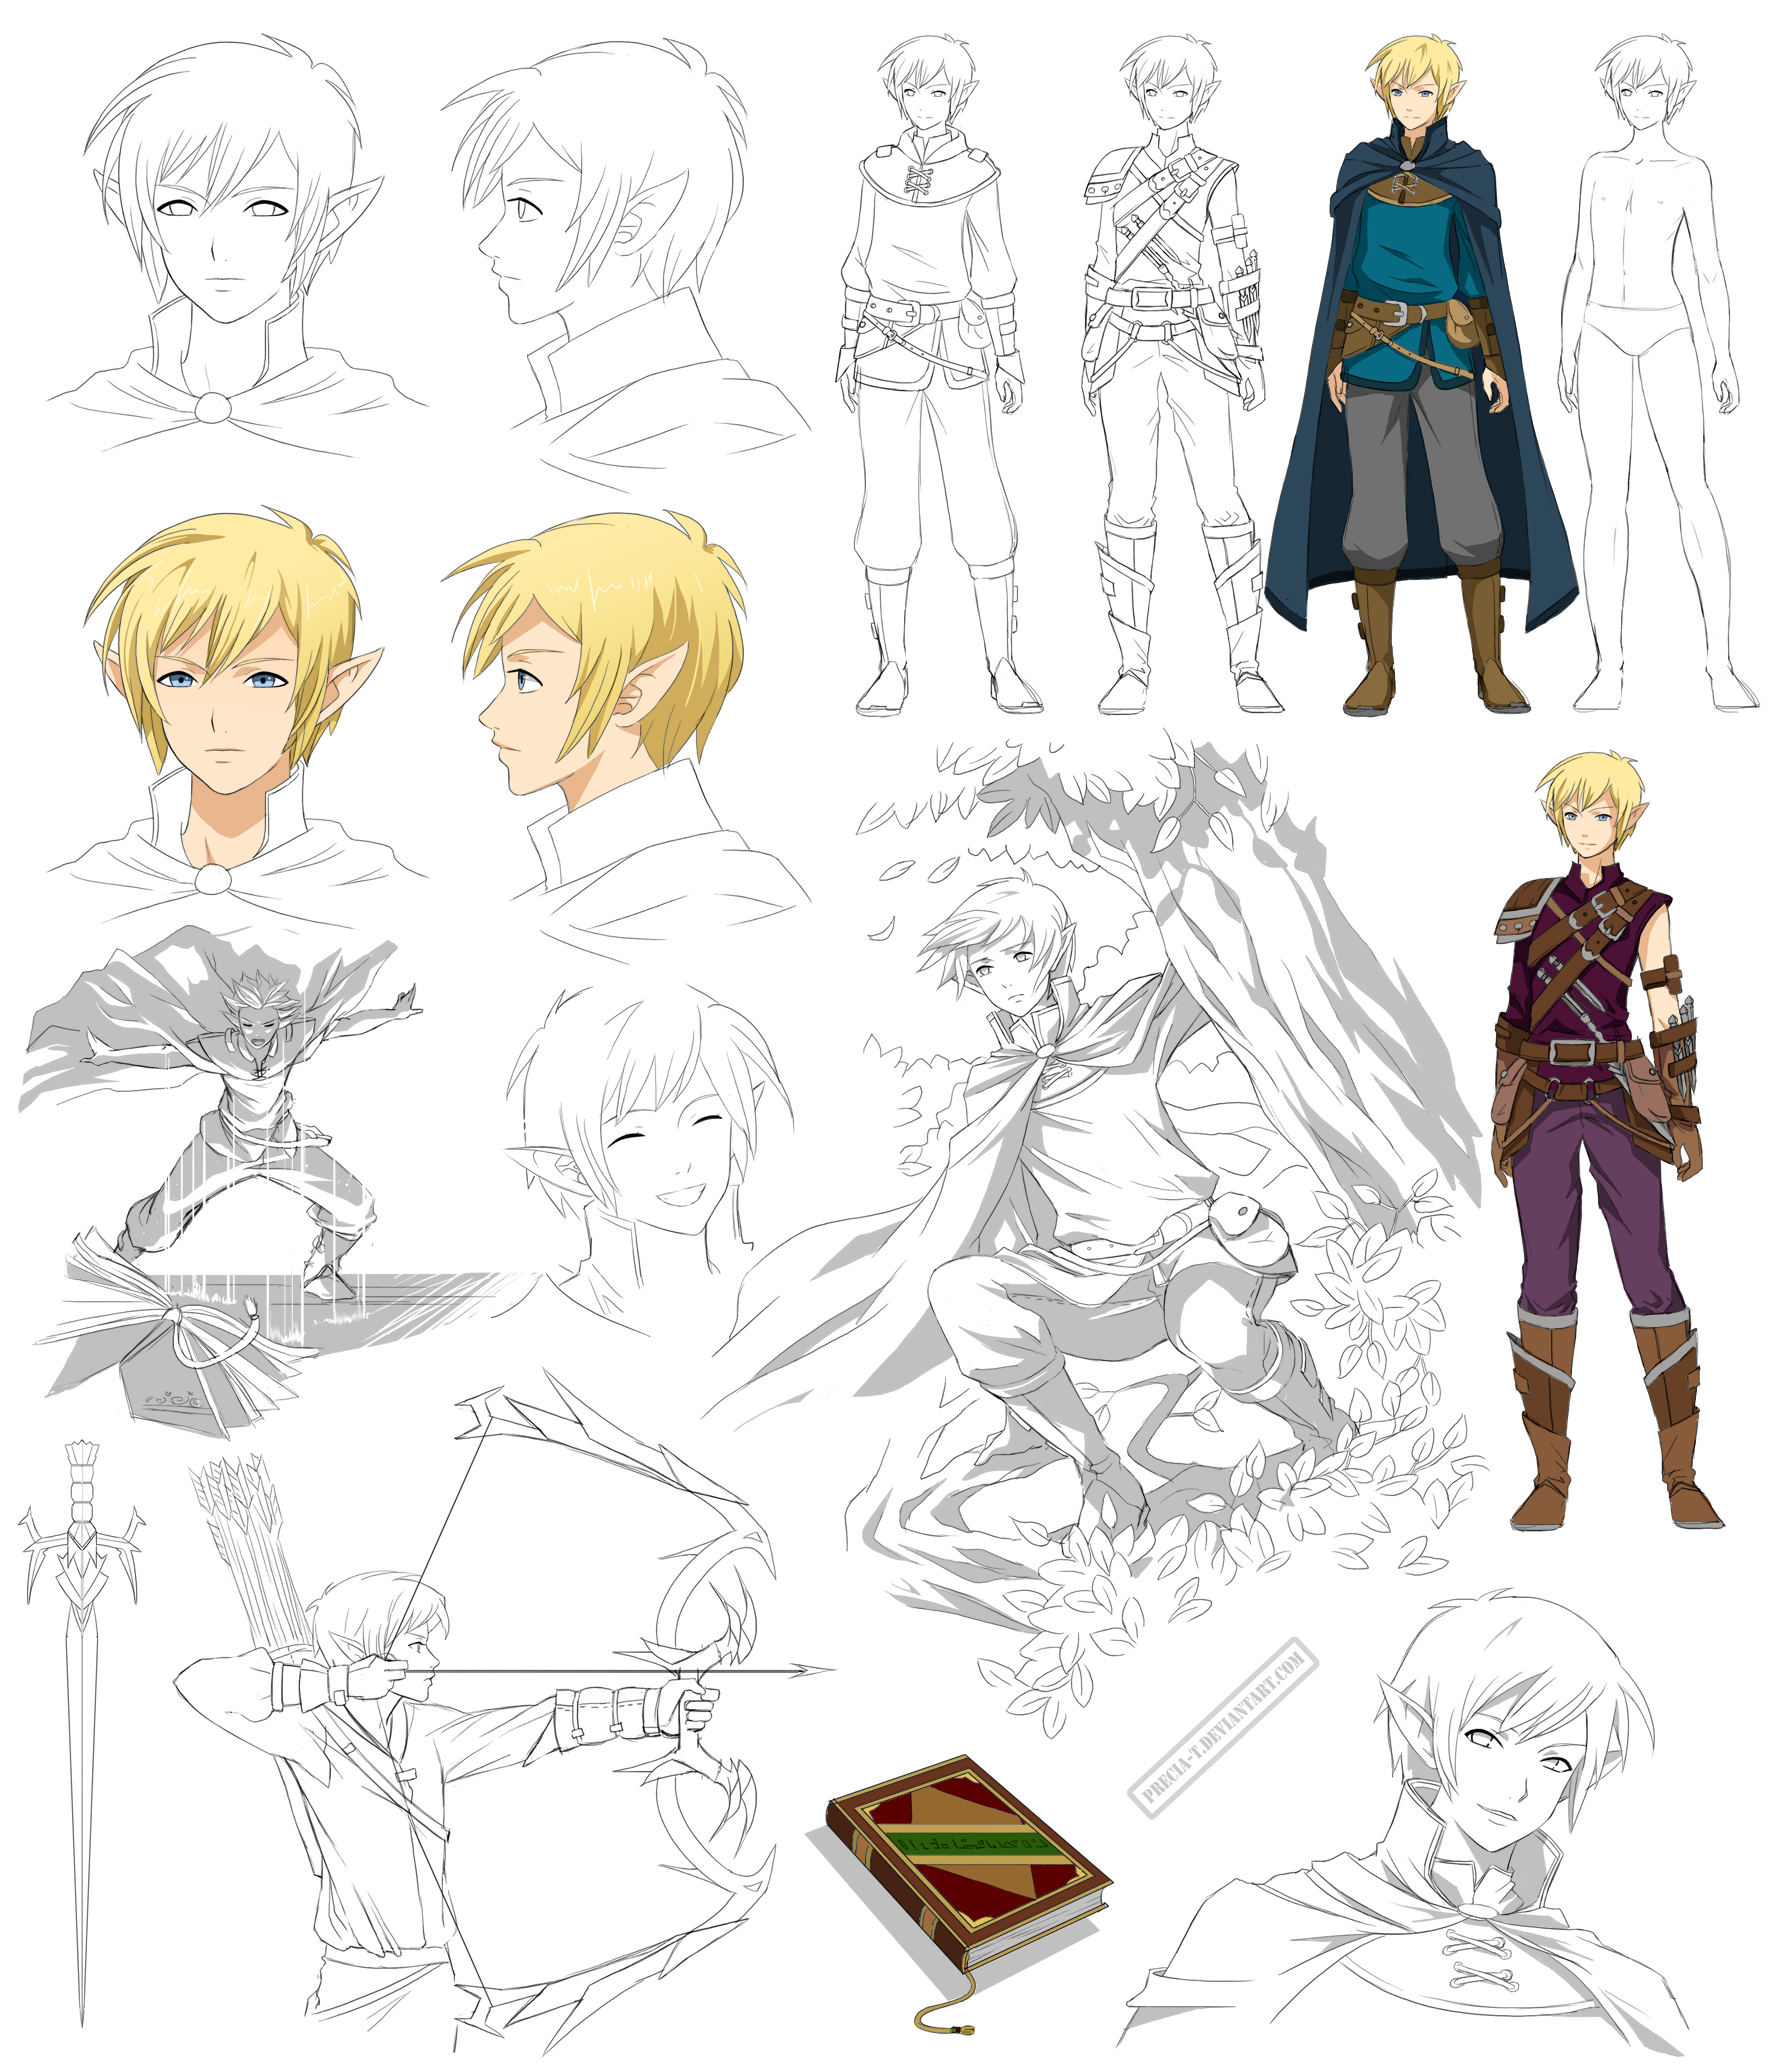 Elf boy design, Icarus (Commision) by Precia-T